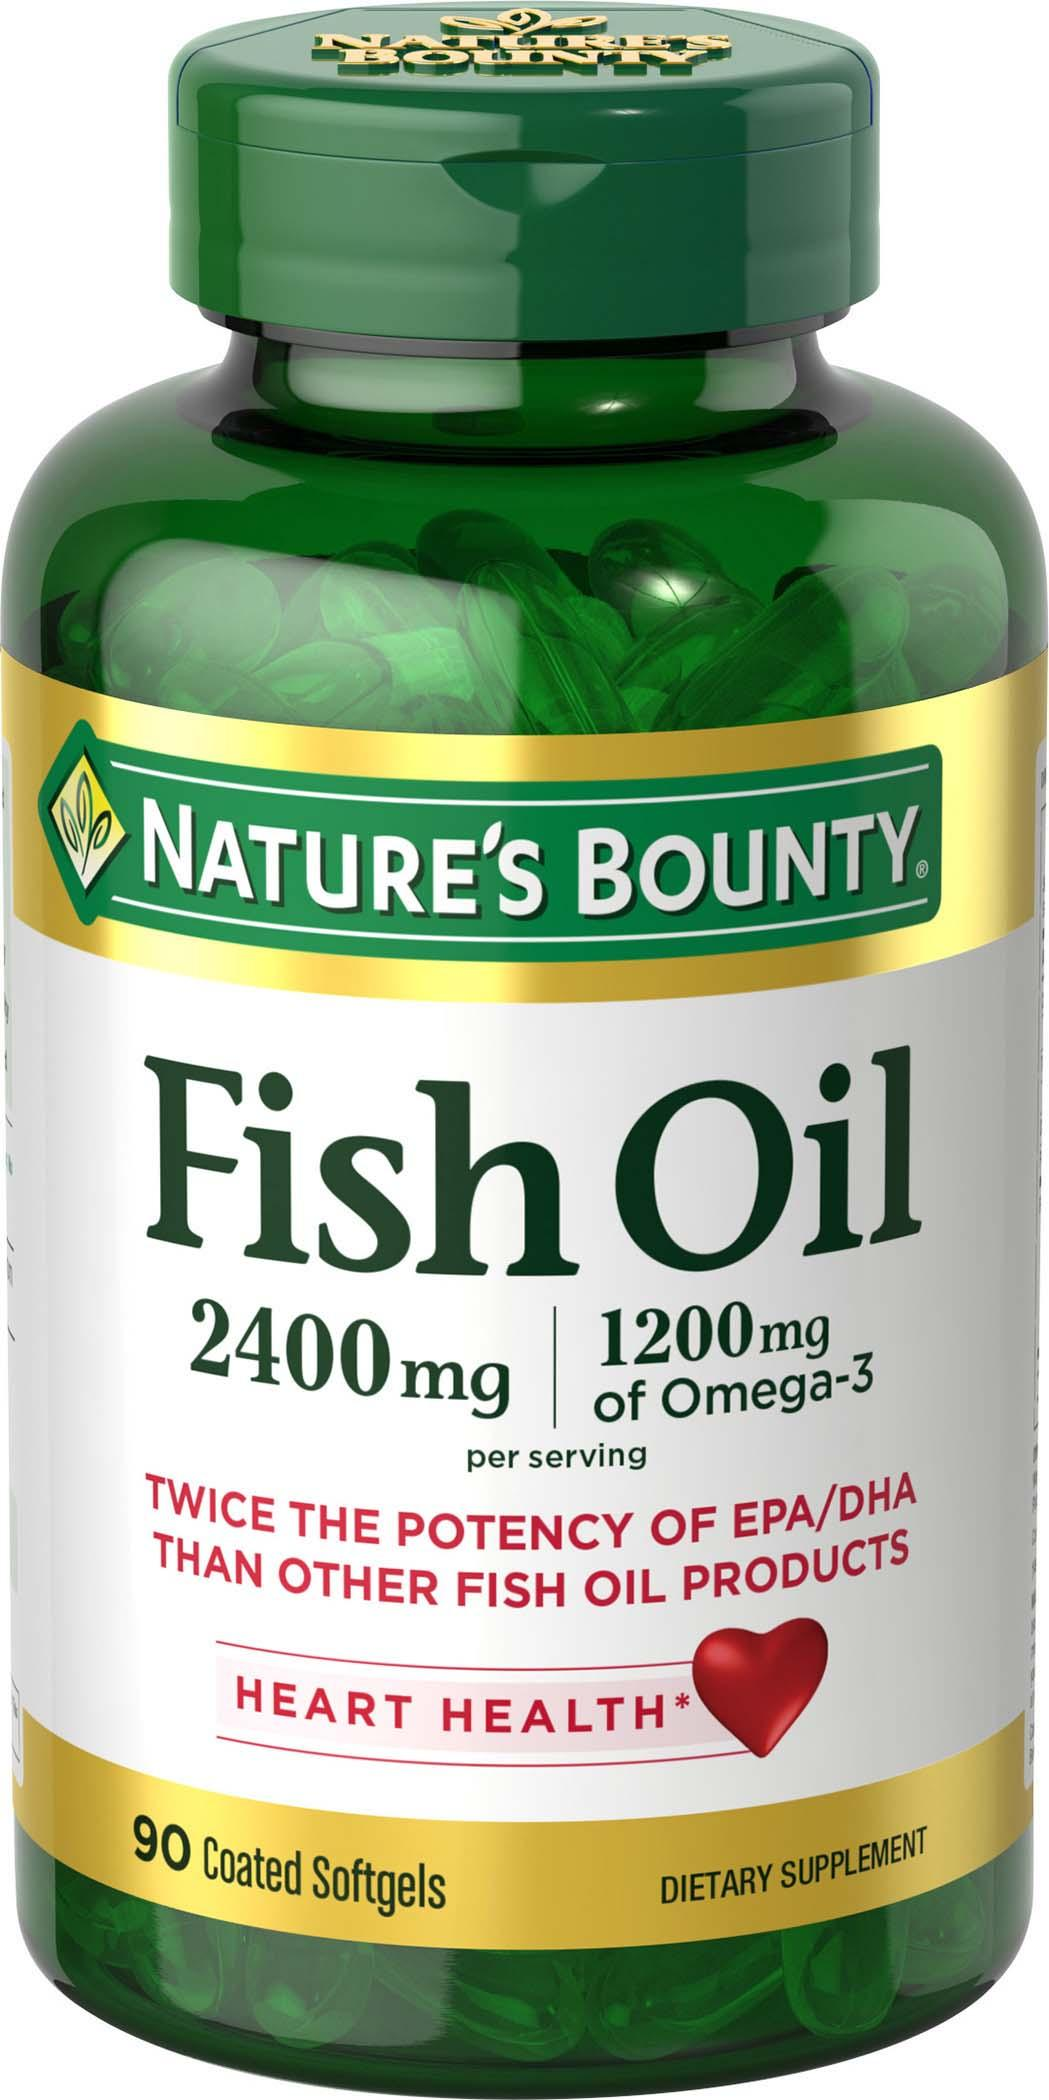 Nature 39 s bounty fish oil 2400 mg double for Nature s bounty fish oil review